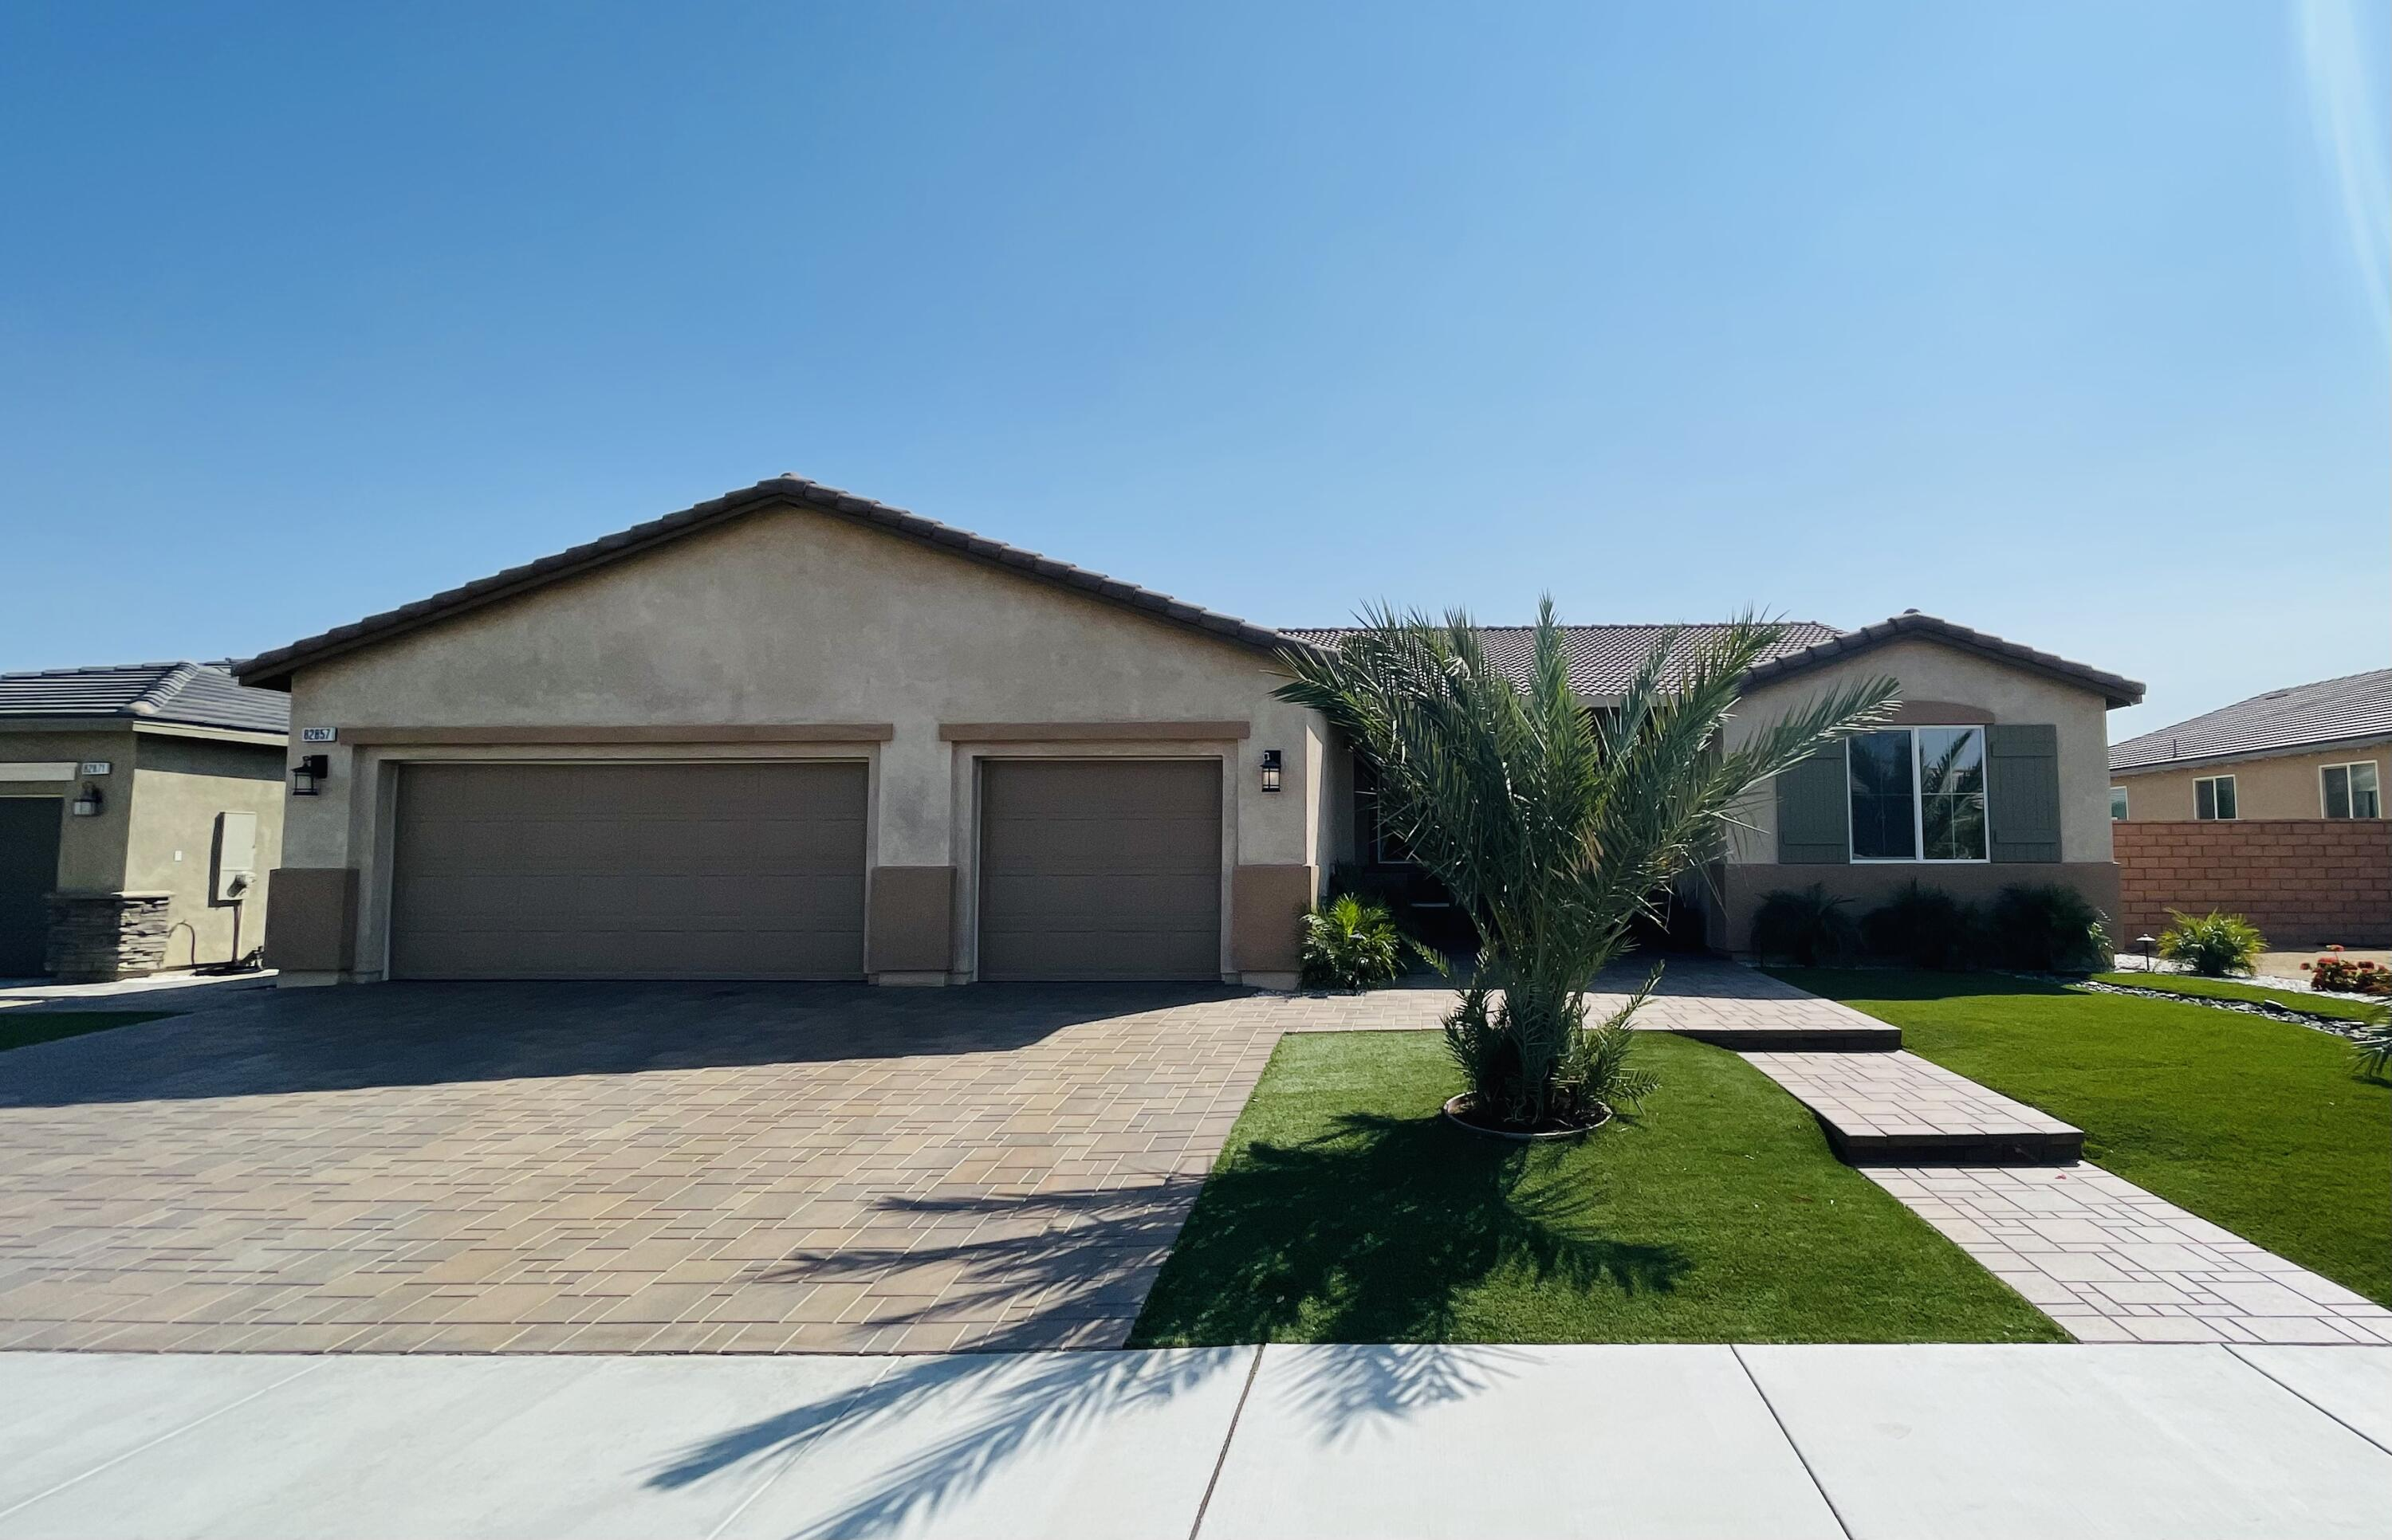 The prestigious community Whitter Ranch presents an eye-catching property, awaiting a lucky new owner. Newly constructed Airbnb's favorite, get ready to own your dream home! Over $180,000 dollars in upgrades! This 4 bedroom and 3 bath home with pool/spa. Designed for indoor/outdoor living, this newer home offers an expansive floor plan and oversized lot. A grand courtyard entrance welcomes you into the home. From the moment you walk into the home you will be impressed by the large open concept design with a connected living room, kitchen and home office that is perfect for gatherings. Custom dark mahogany cabinets with oversize white island in the kitchen area. Its striking single-story floor plan boasts everything from grand living areas and oversized bedrooms. This home is perfect for luxurious living and entertaining guests.  There is an oversize covered backyard patio with upgraded led lights, ceiling fans and misters, There is also a large 10ft long BBQ island, a 40in stainless steel natural gas grill. Amazing natural gas stone firepit.  Fully automated heated POOL and SPA with color led ambient lighting. Ample parking space with upgraded custom pavers, an oversized 3-car attached garage parking are a few bonus features that you will enjoy. This professionally designed property of extraordinary luxury and beauty is waiting for you, No HOA walking distance for festivals venues and shopping center, centrally located. Must SEE!! Welcome to Paradise!